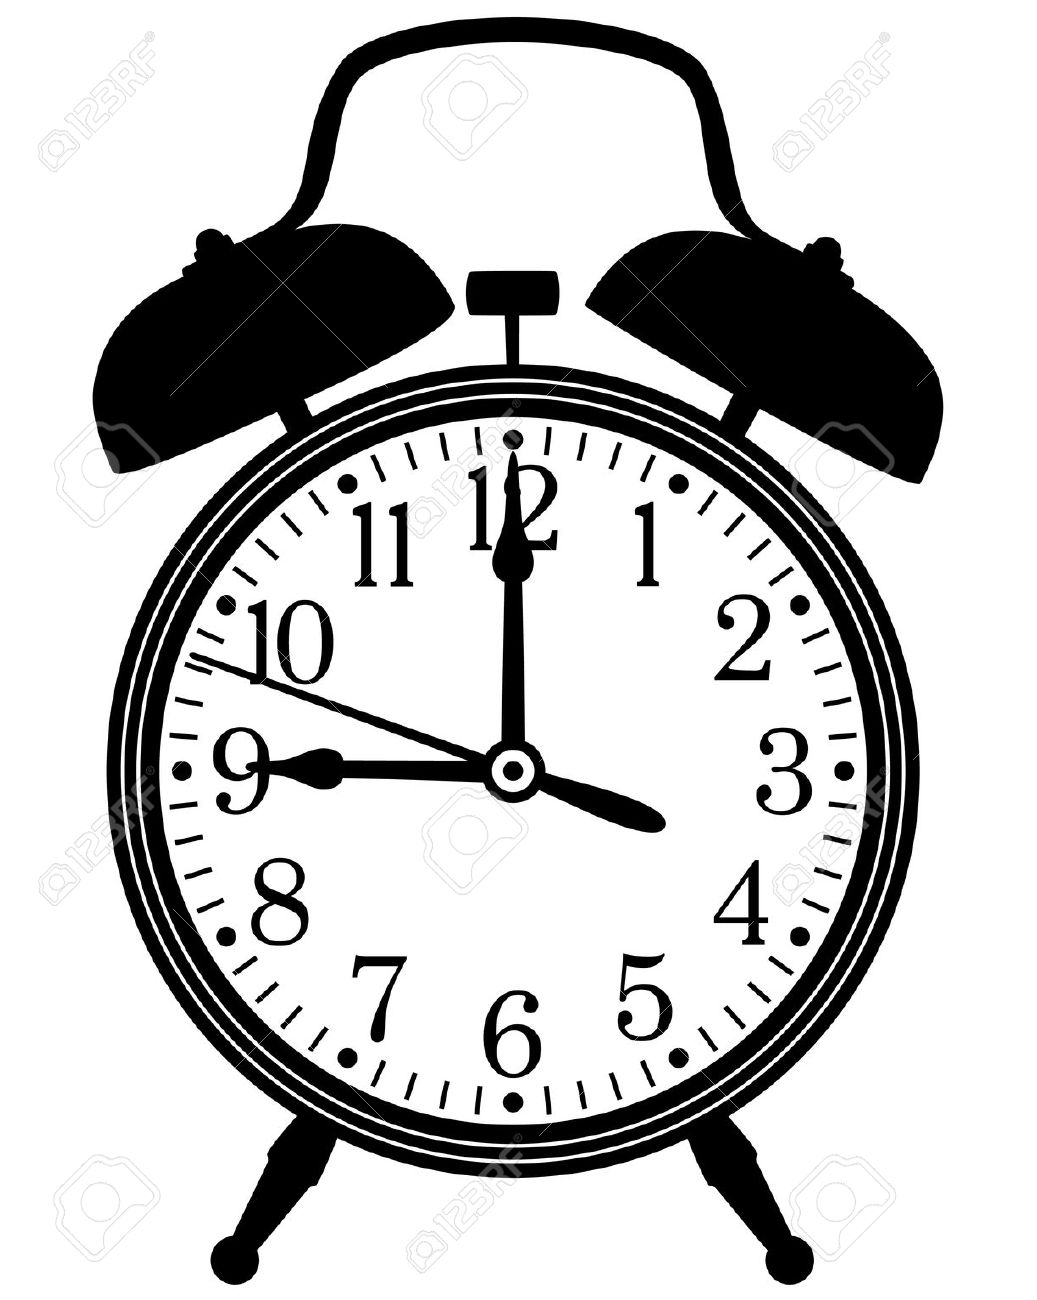 Download Clip Art Black And White Retro Clock Clipart